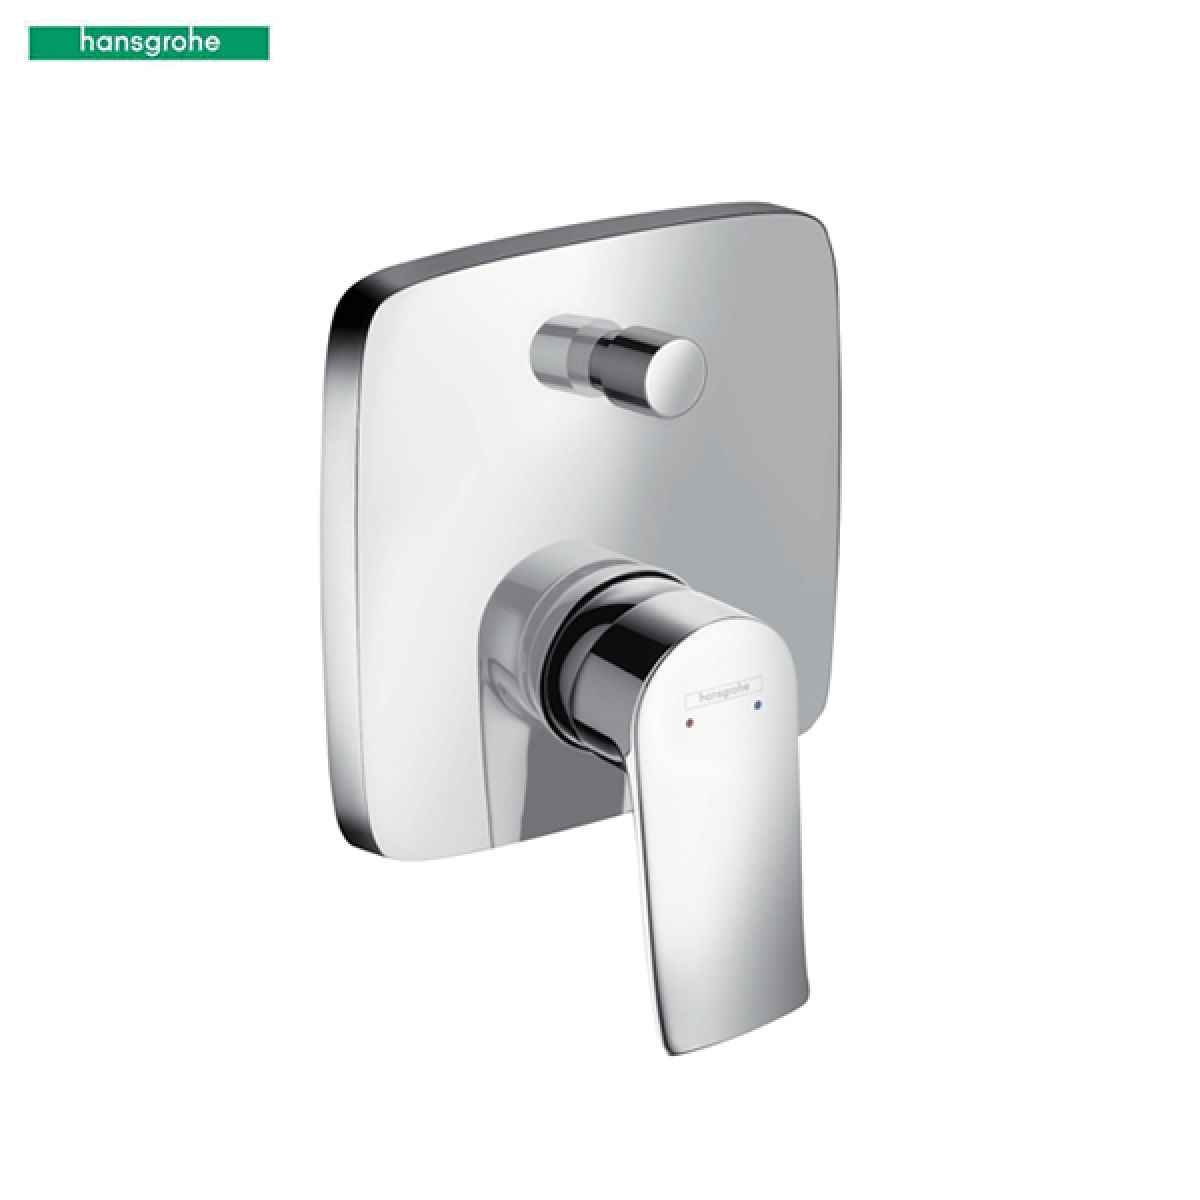 hansgrohe metris concealed single lever bath mixer uk bathrooms. Black Bedroom Furniture Sets. Home Design Ideas